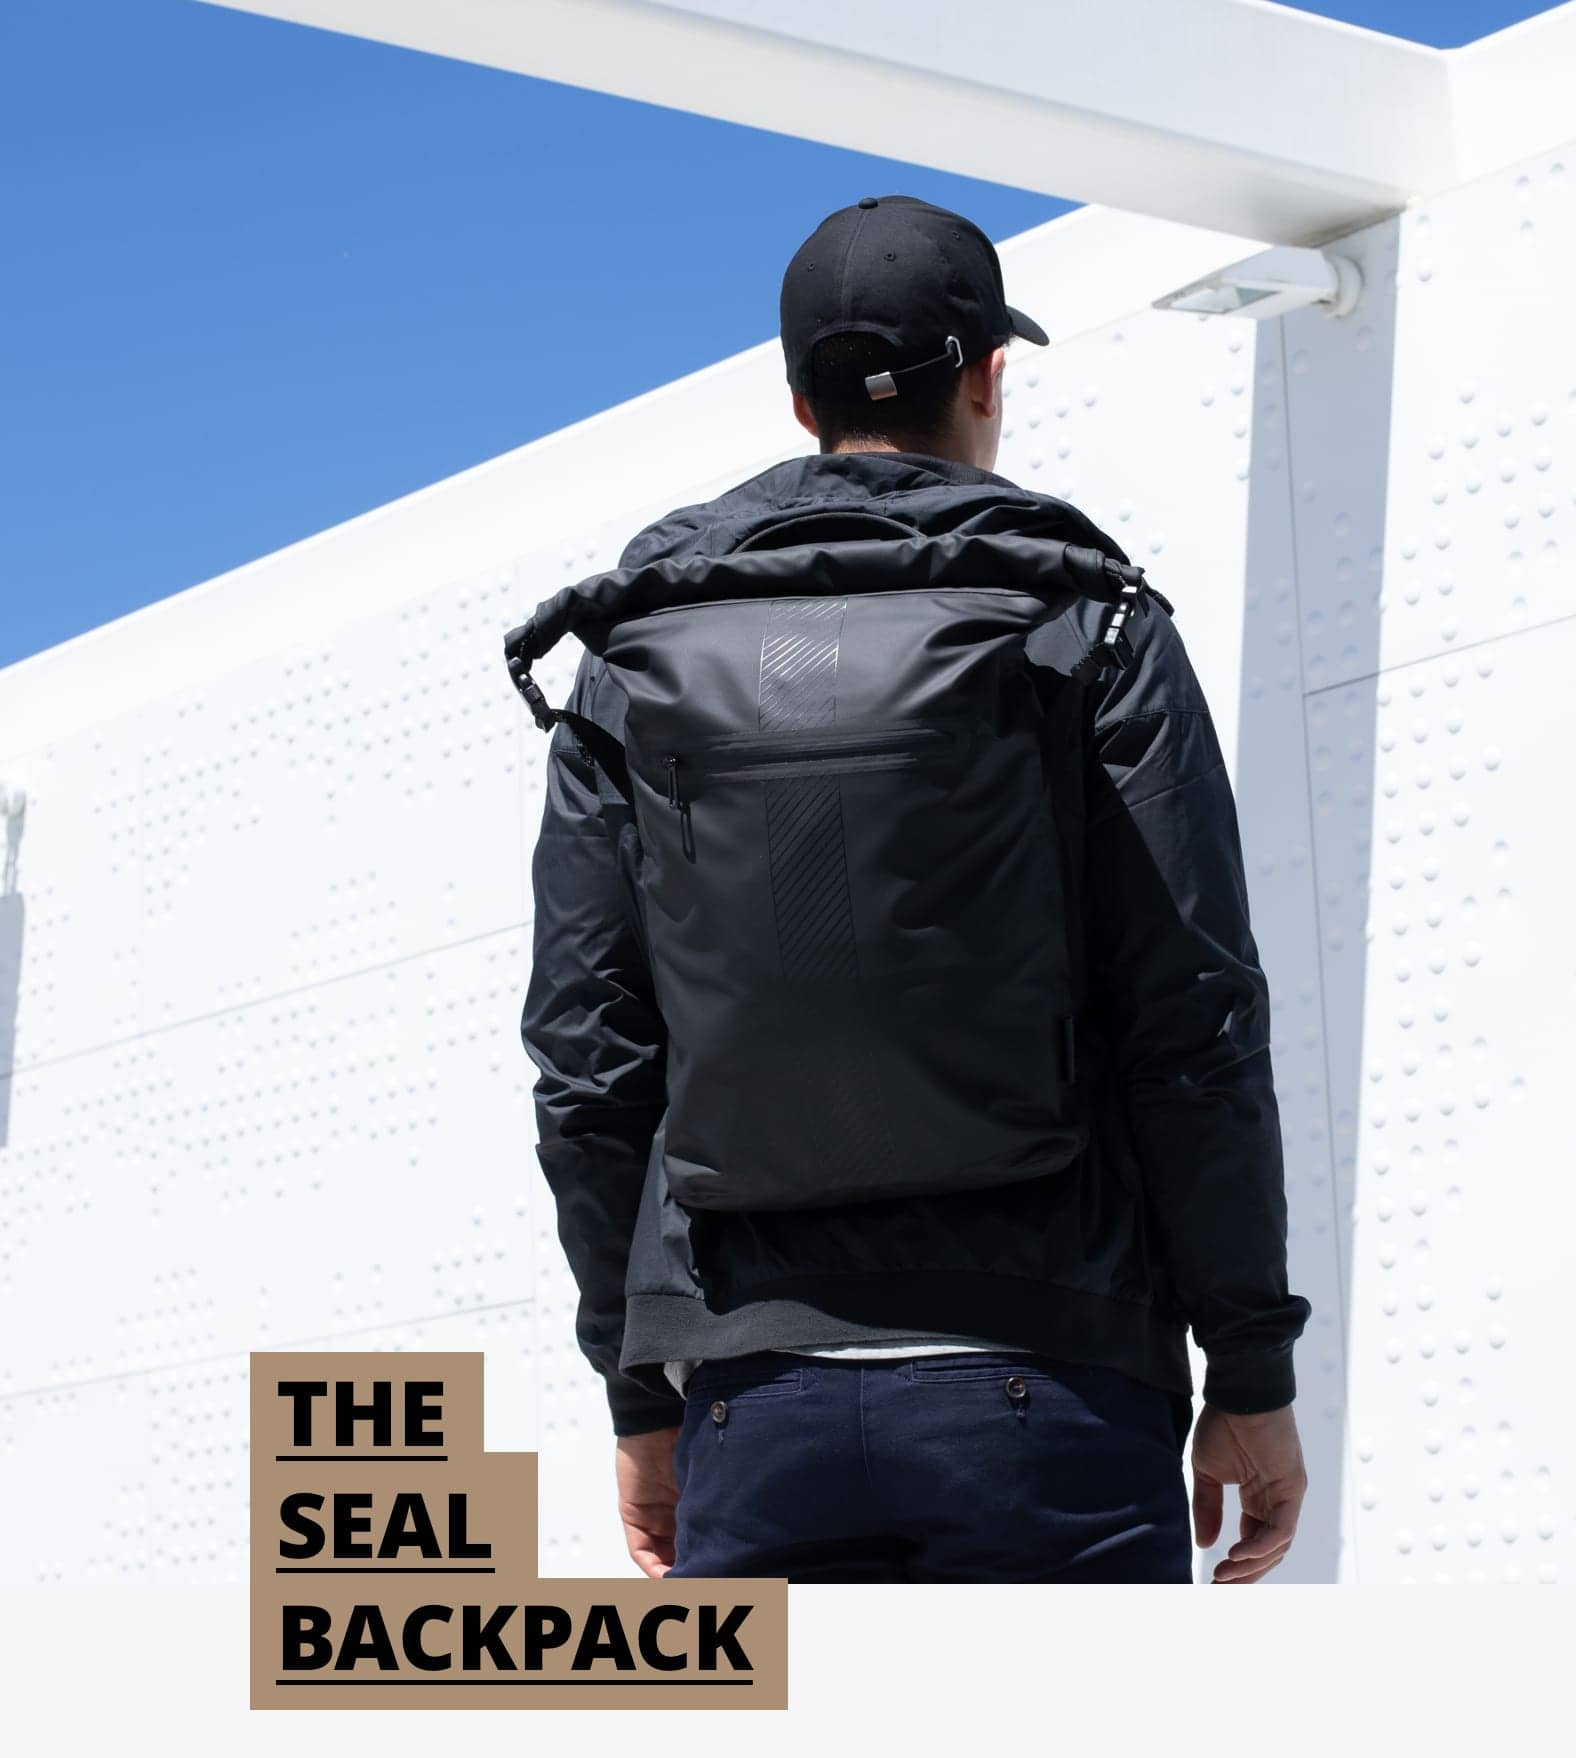 The Seal Backpack